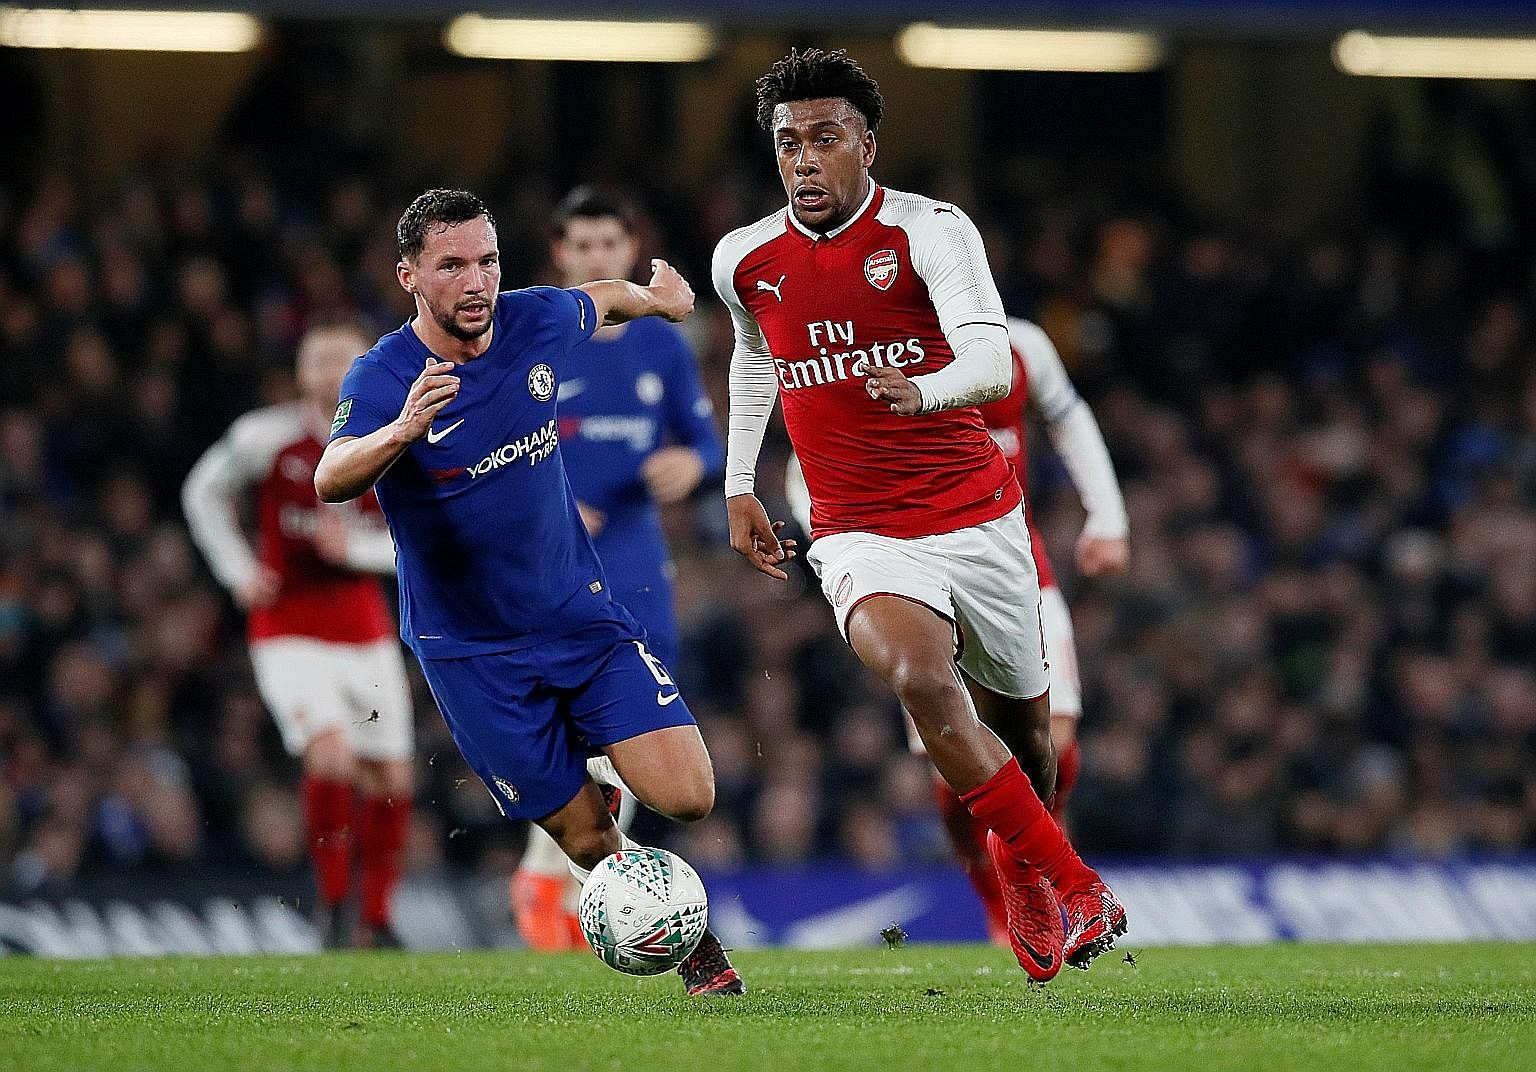 That a rough gem, Alex Iwobi, being pursued by Chelsea's Danny Drinkwater, was Arsenal's best performer in their 0-0 League Cup draw is a far cry from the days when Gunners fans could brag about their 2003-04 season, when they went an entire league c